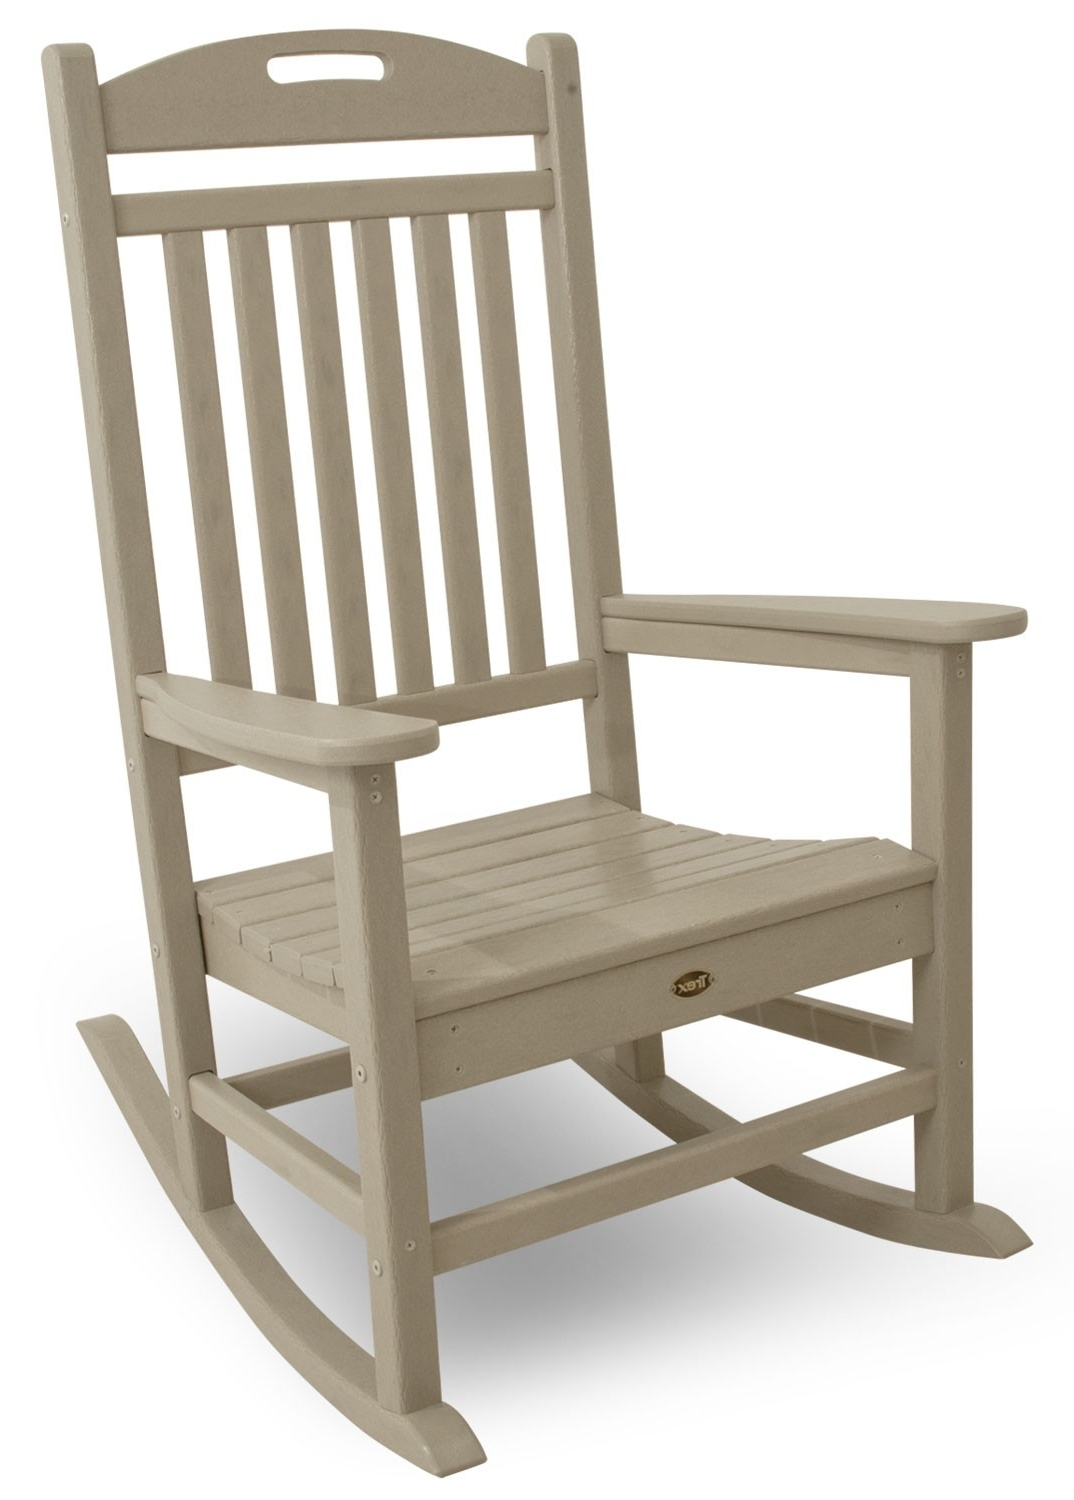 Yacht Club Rocking Chair In Popular Rocking Chairs For Adults (Gallery 14 of 20)